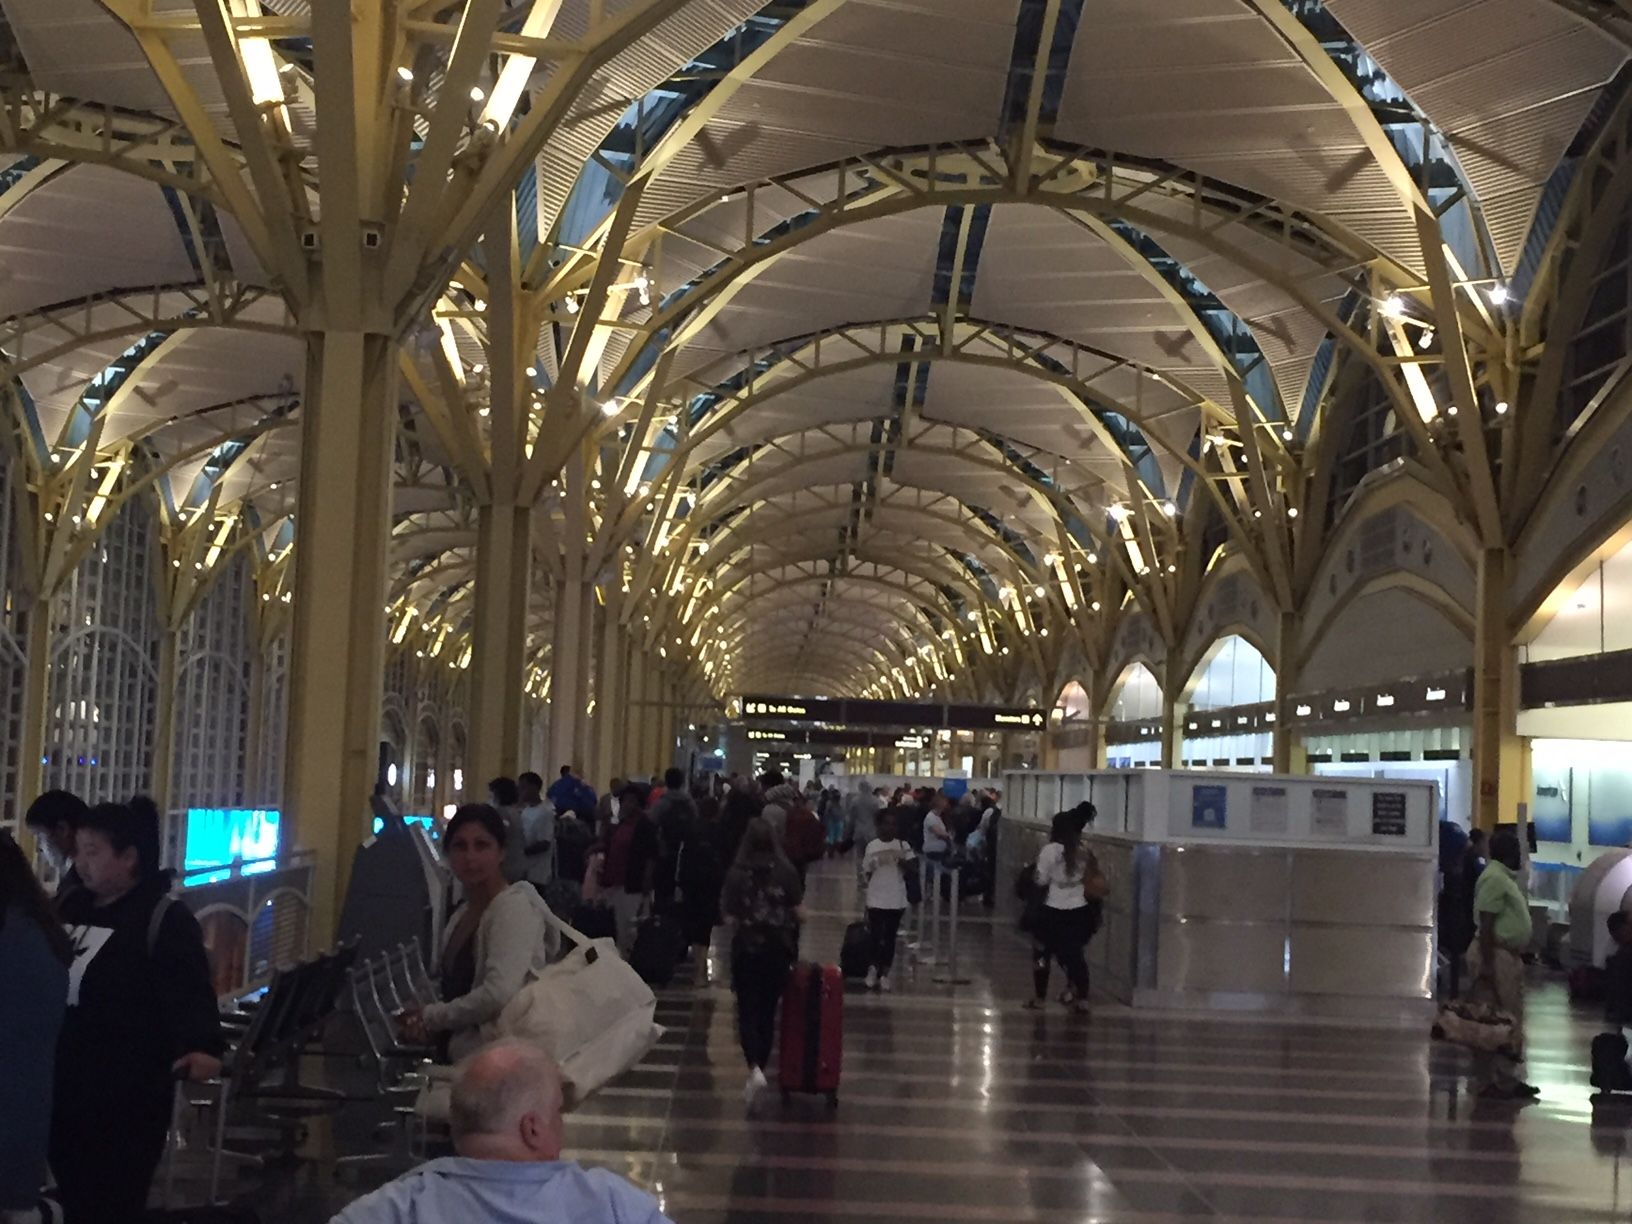 Reagan airport's main concourse had largely returned to normal by dawn on Thursday. (WTOP/John Domen)